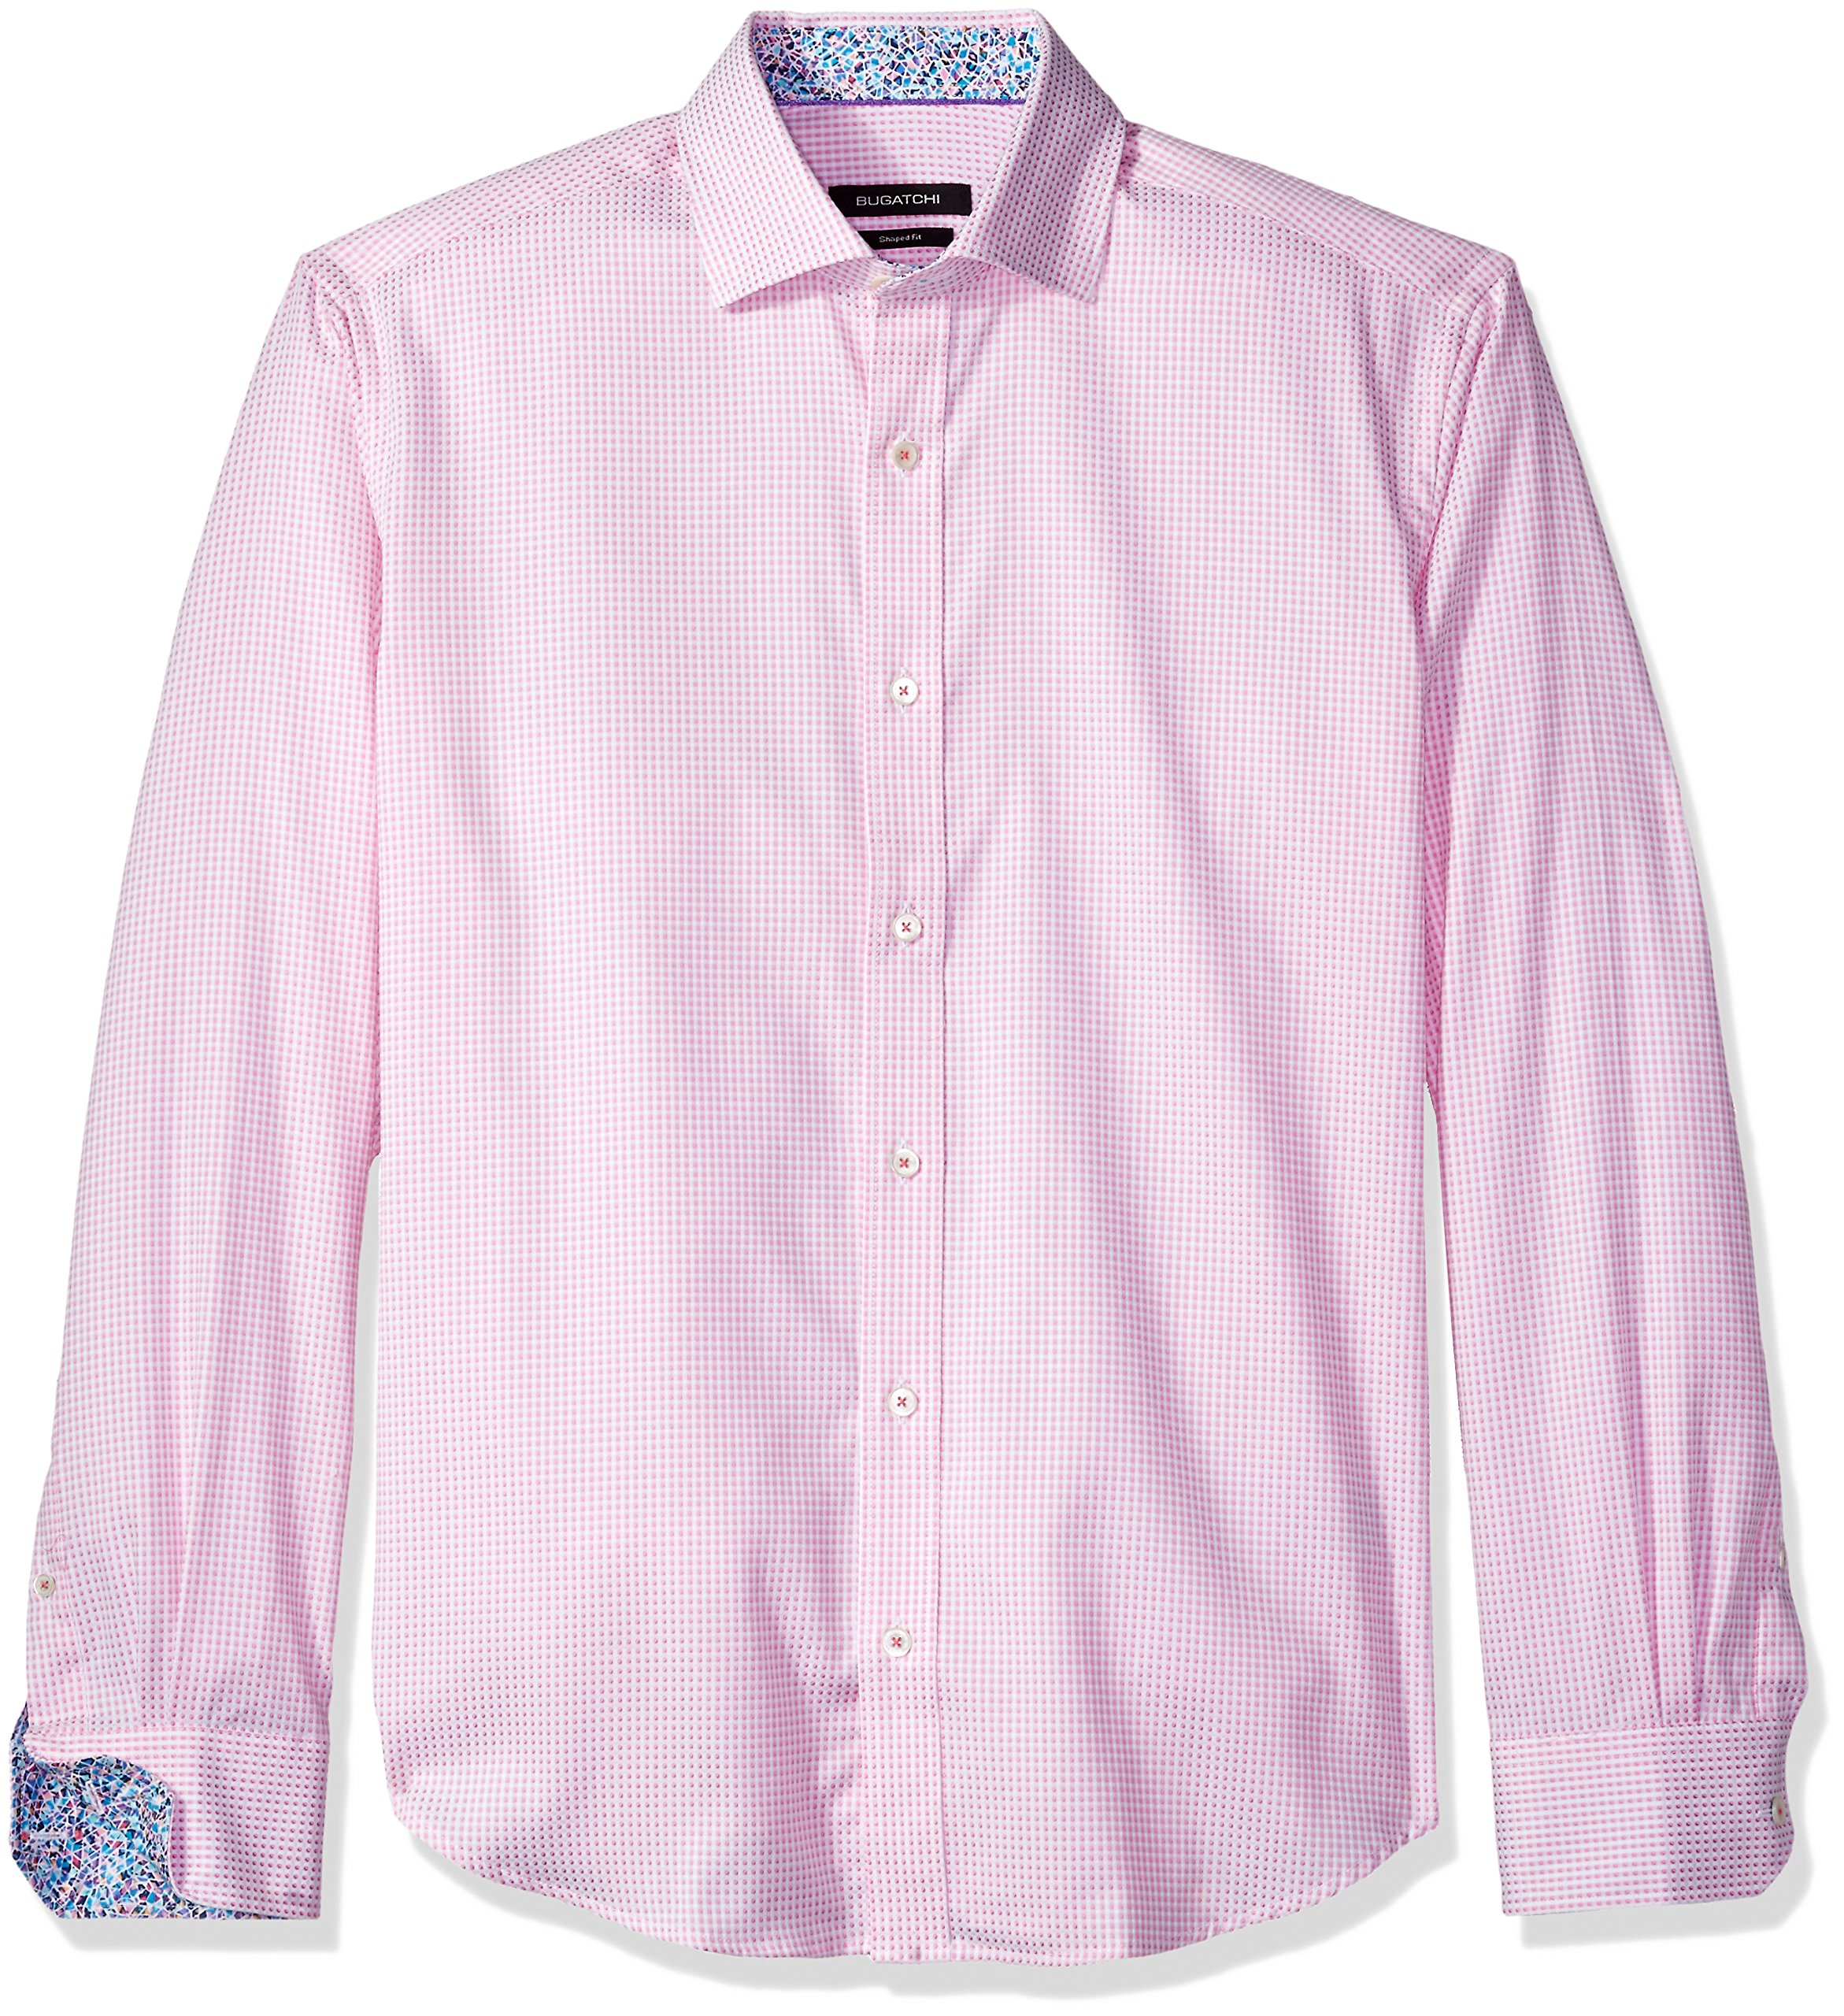 BUGATCHI Men's Cotton Shaped Fit Spread Collar Woven, Pink, X-Large by Bugatchi (Image #1)